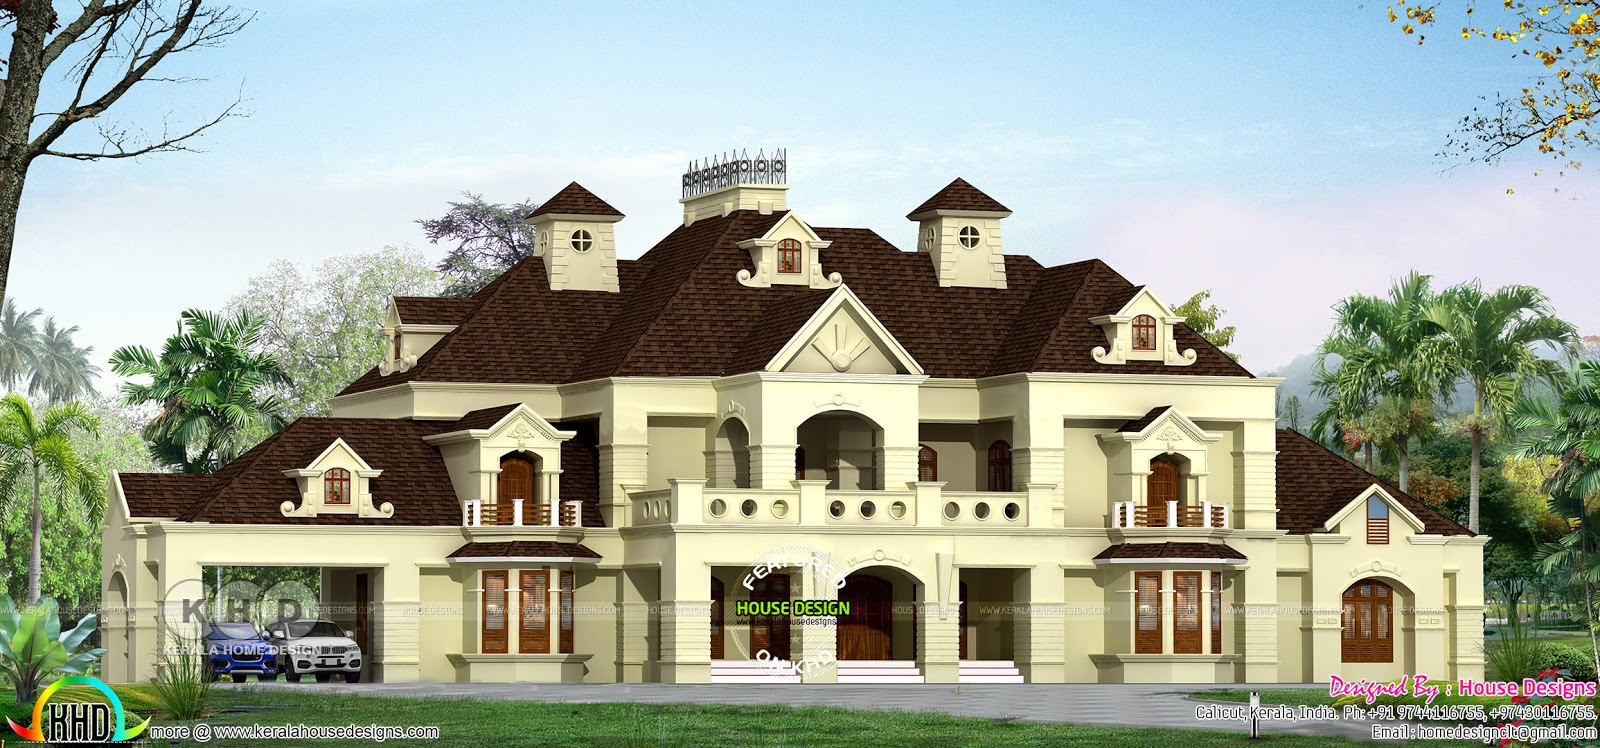 Luxury colonial style 6 bedroom home architecture kerala for Colonial style house plans kerala